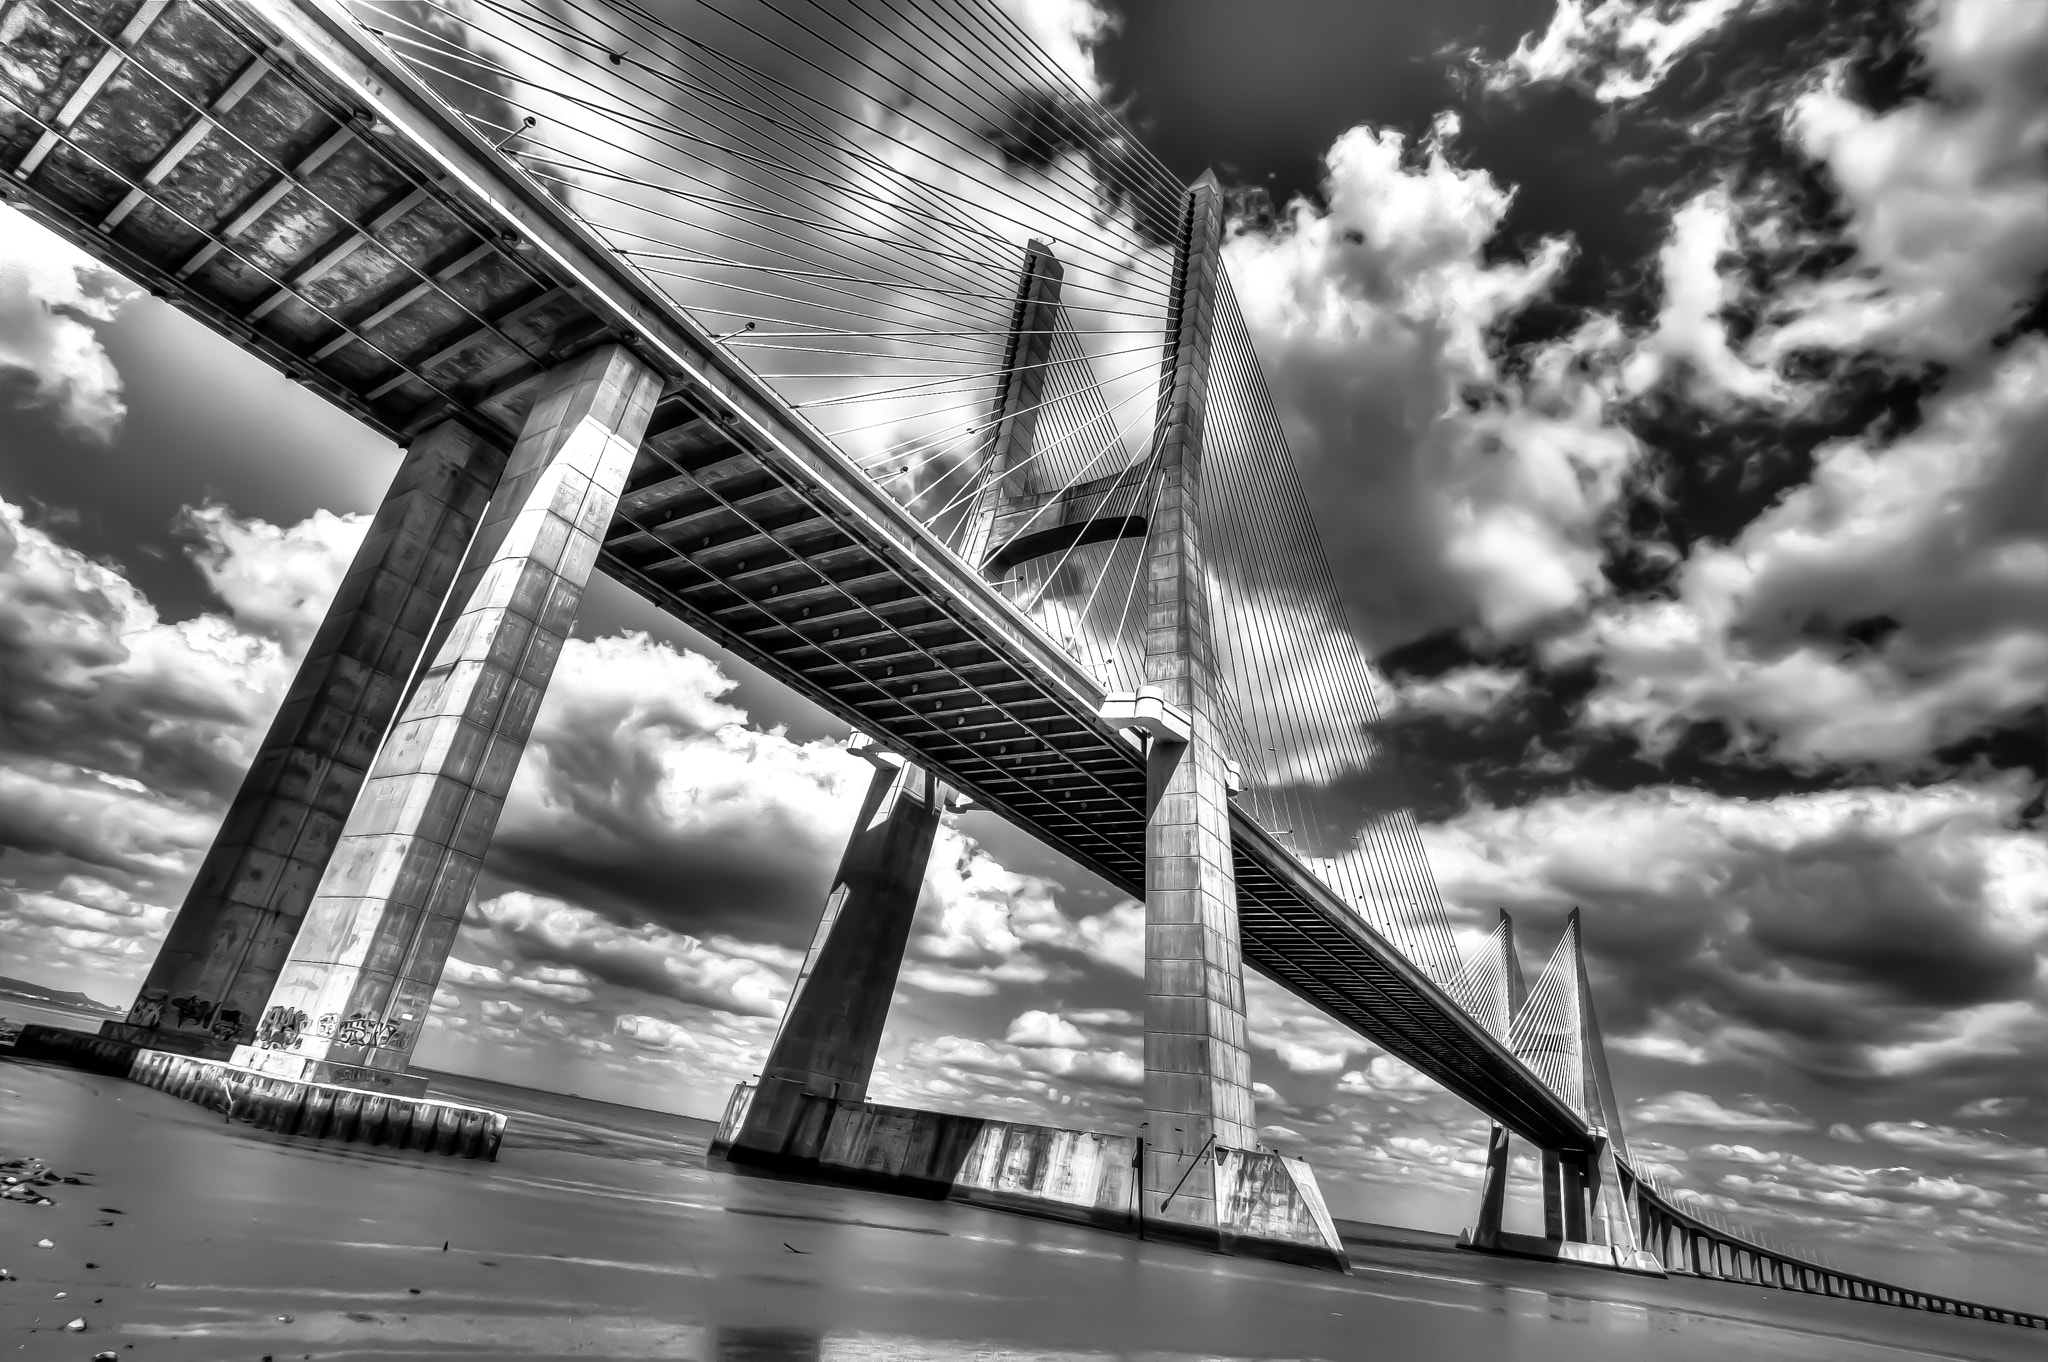 Photograph The Bridge by Peter Teufl on 500px